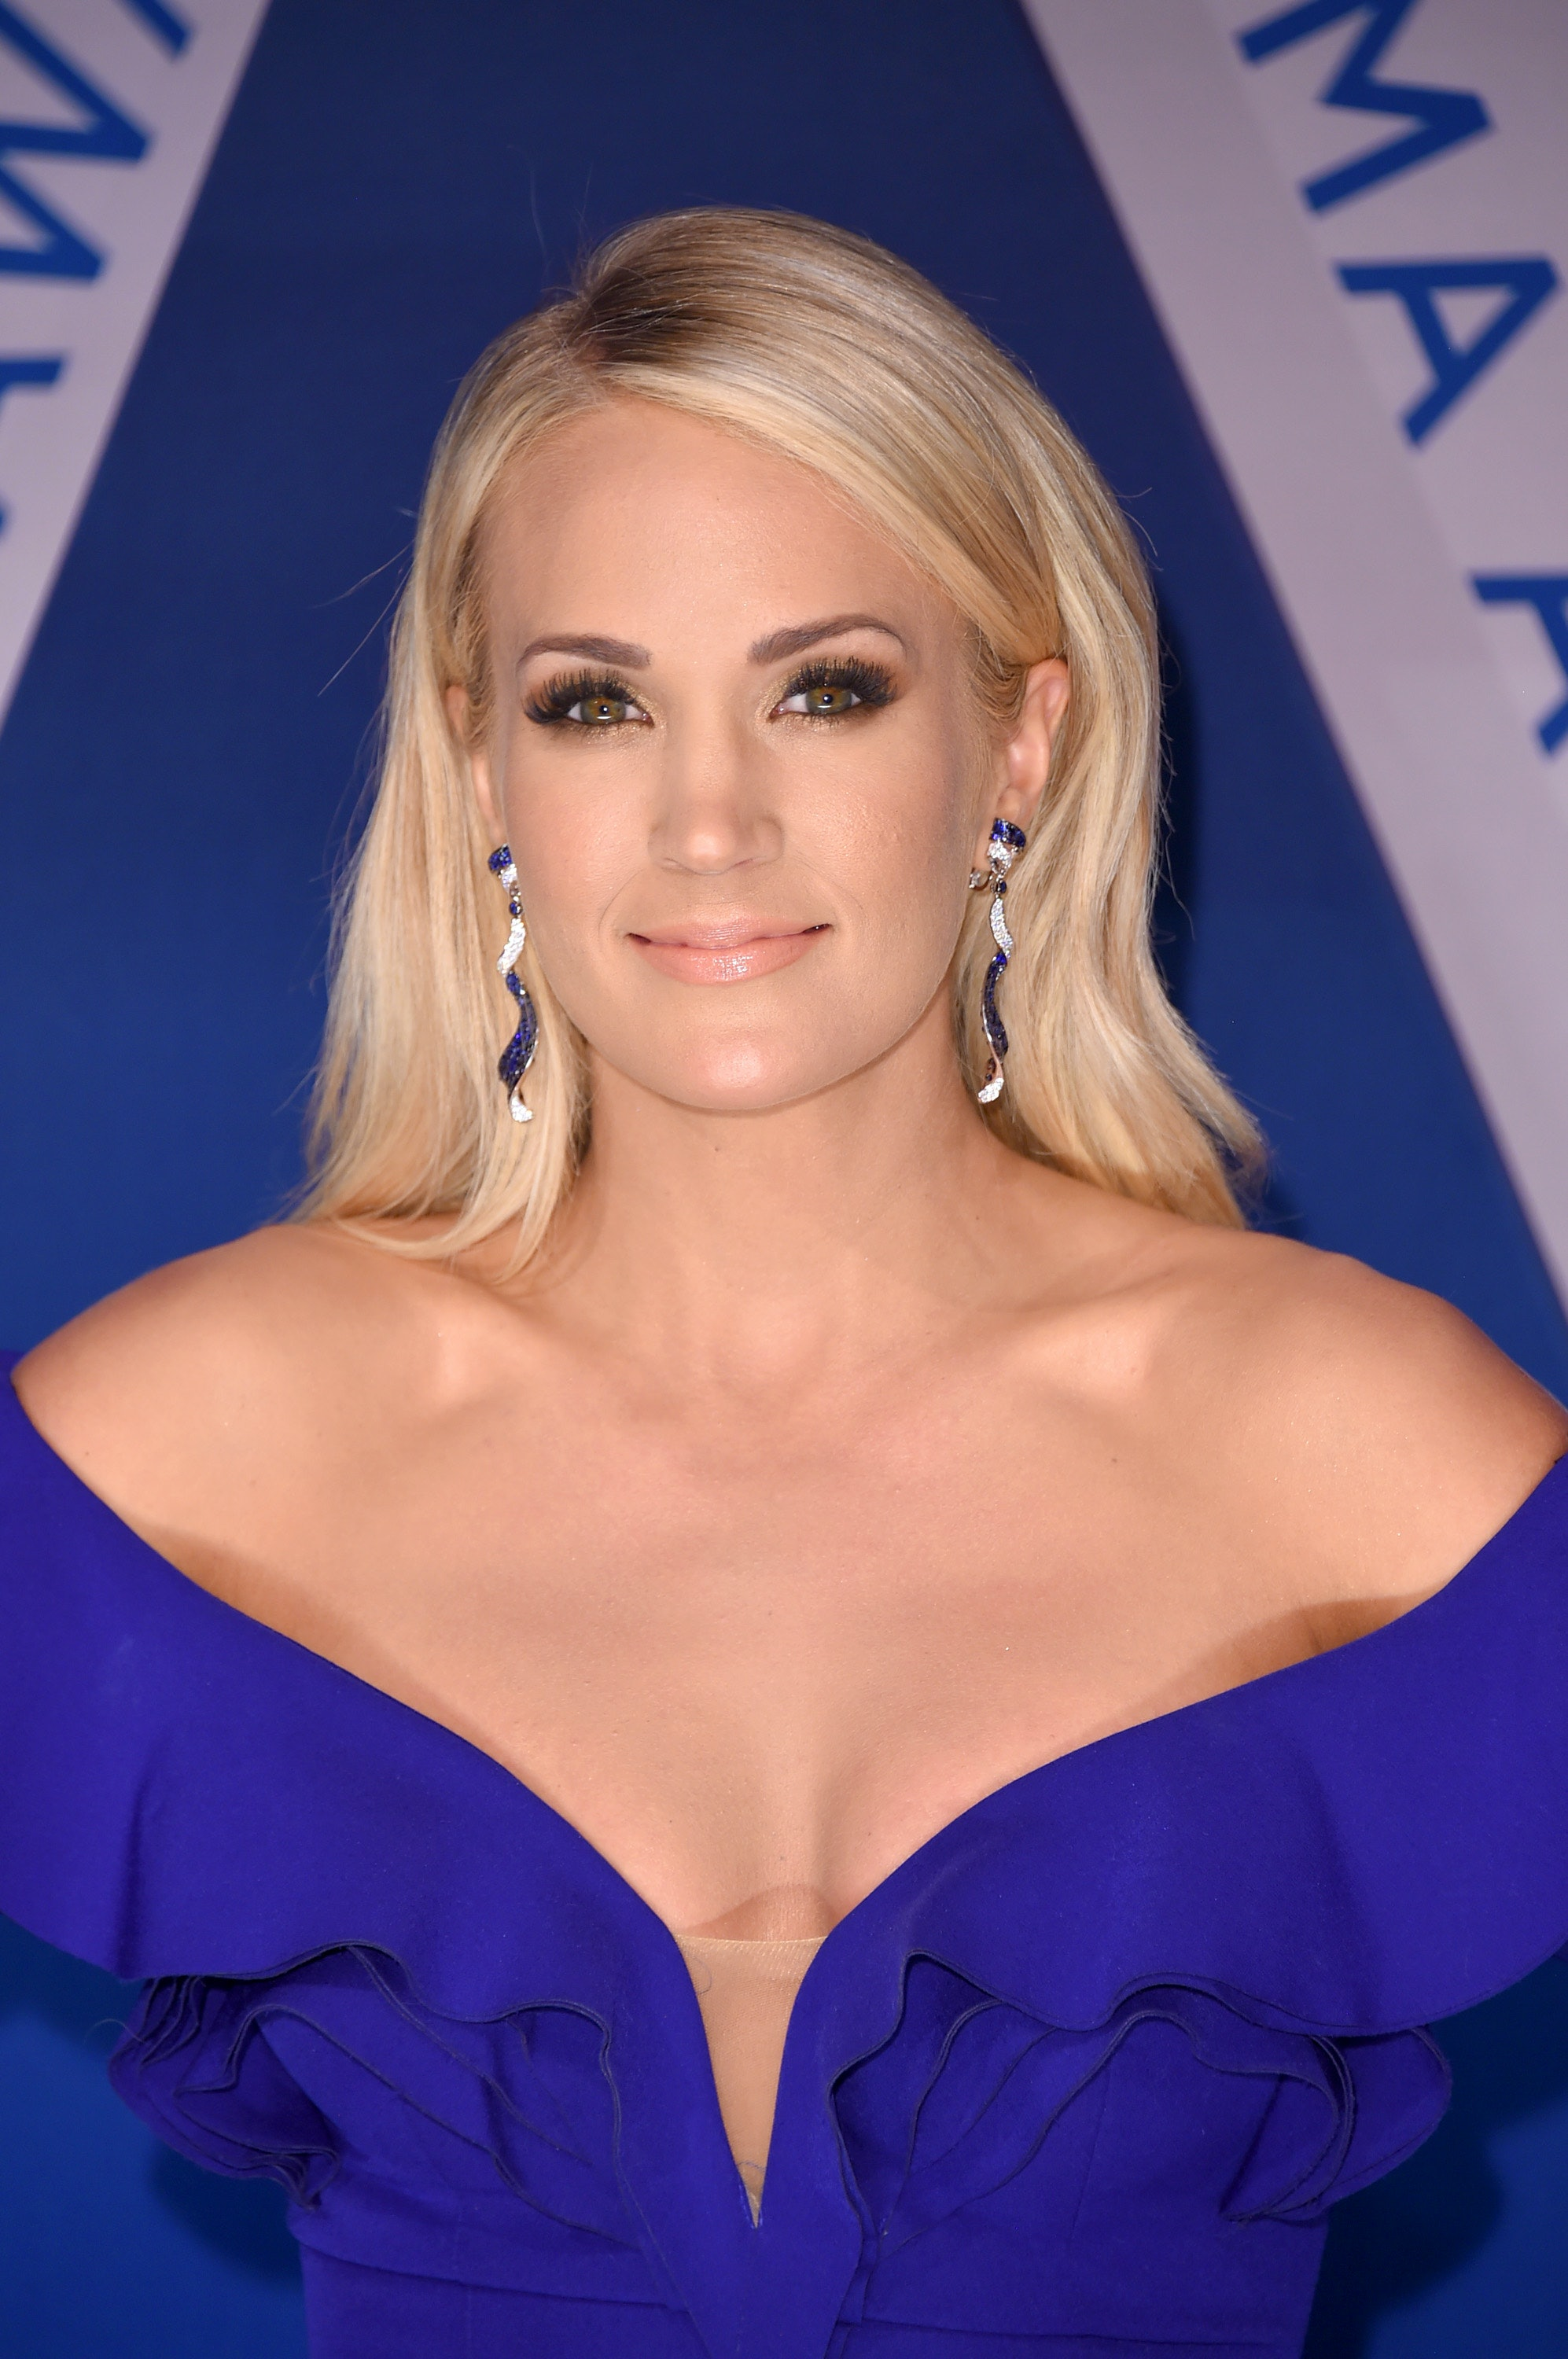 Carrie Underwood May Have Had Plastic Surgery After Her Injury Thats E...